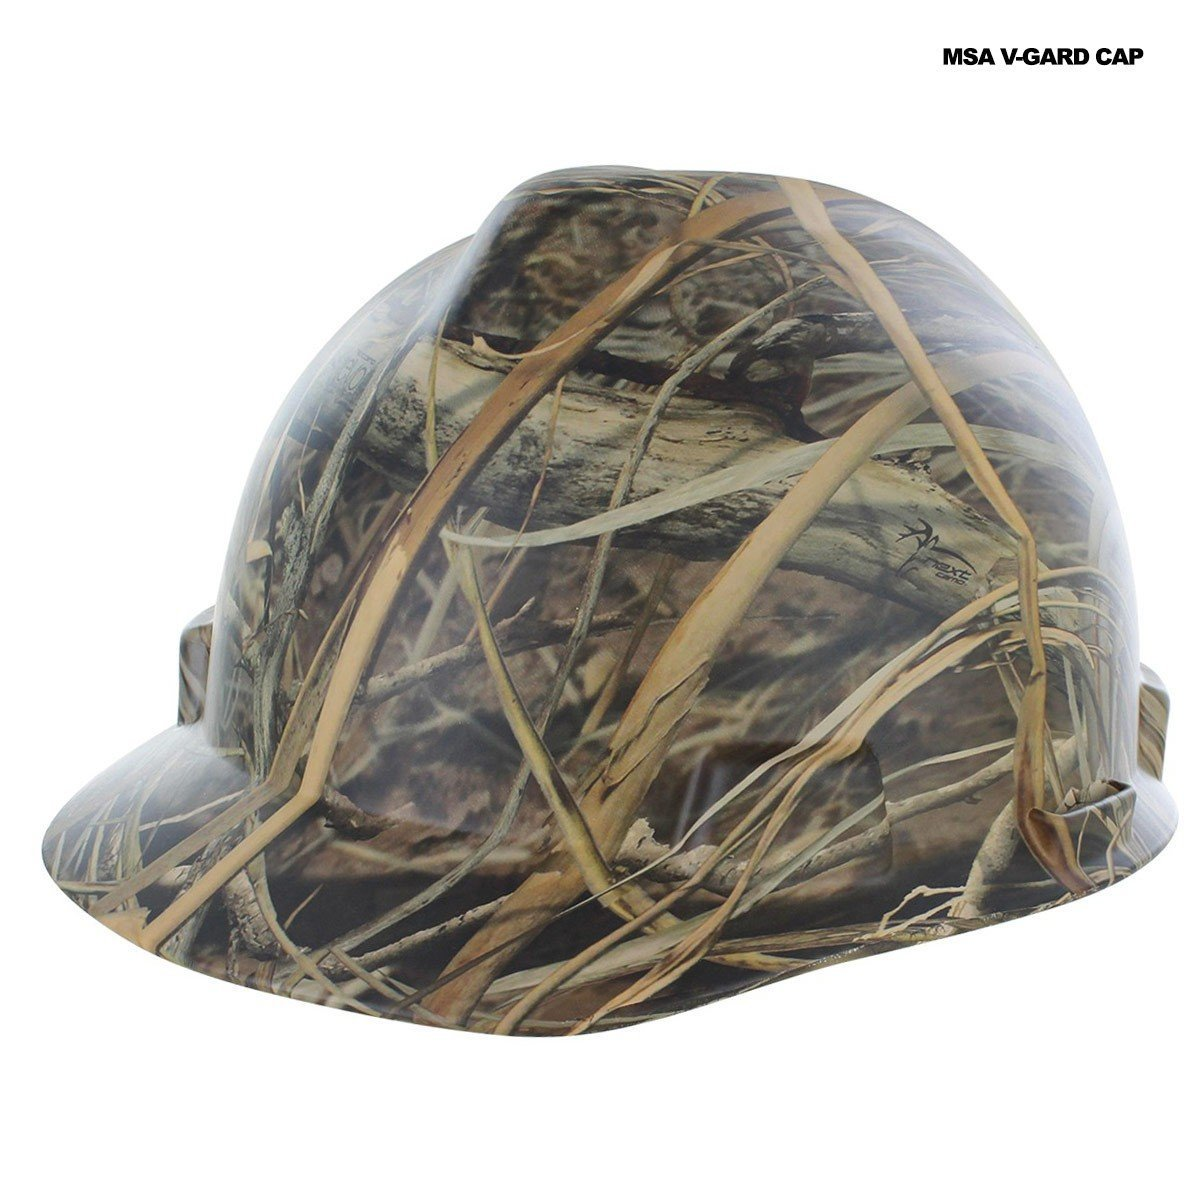 Rugged Blue Custom Hydro Dipped Next Camo EVO Hard Hat MSA V-Gard Staz-On Cap